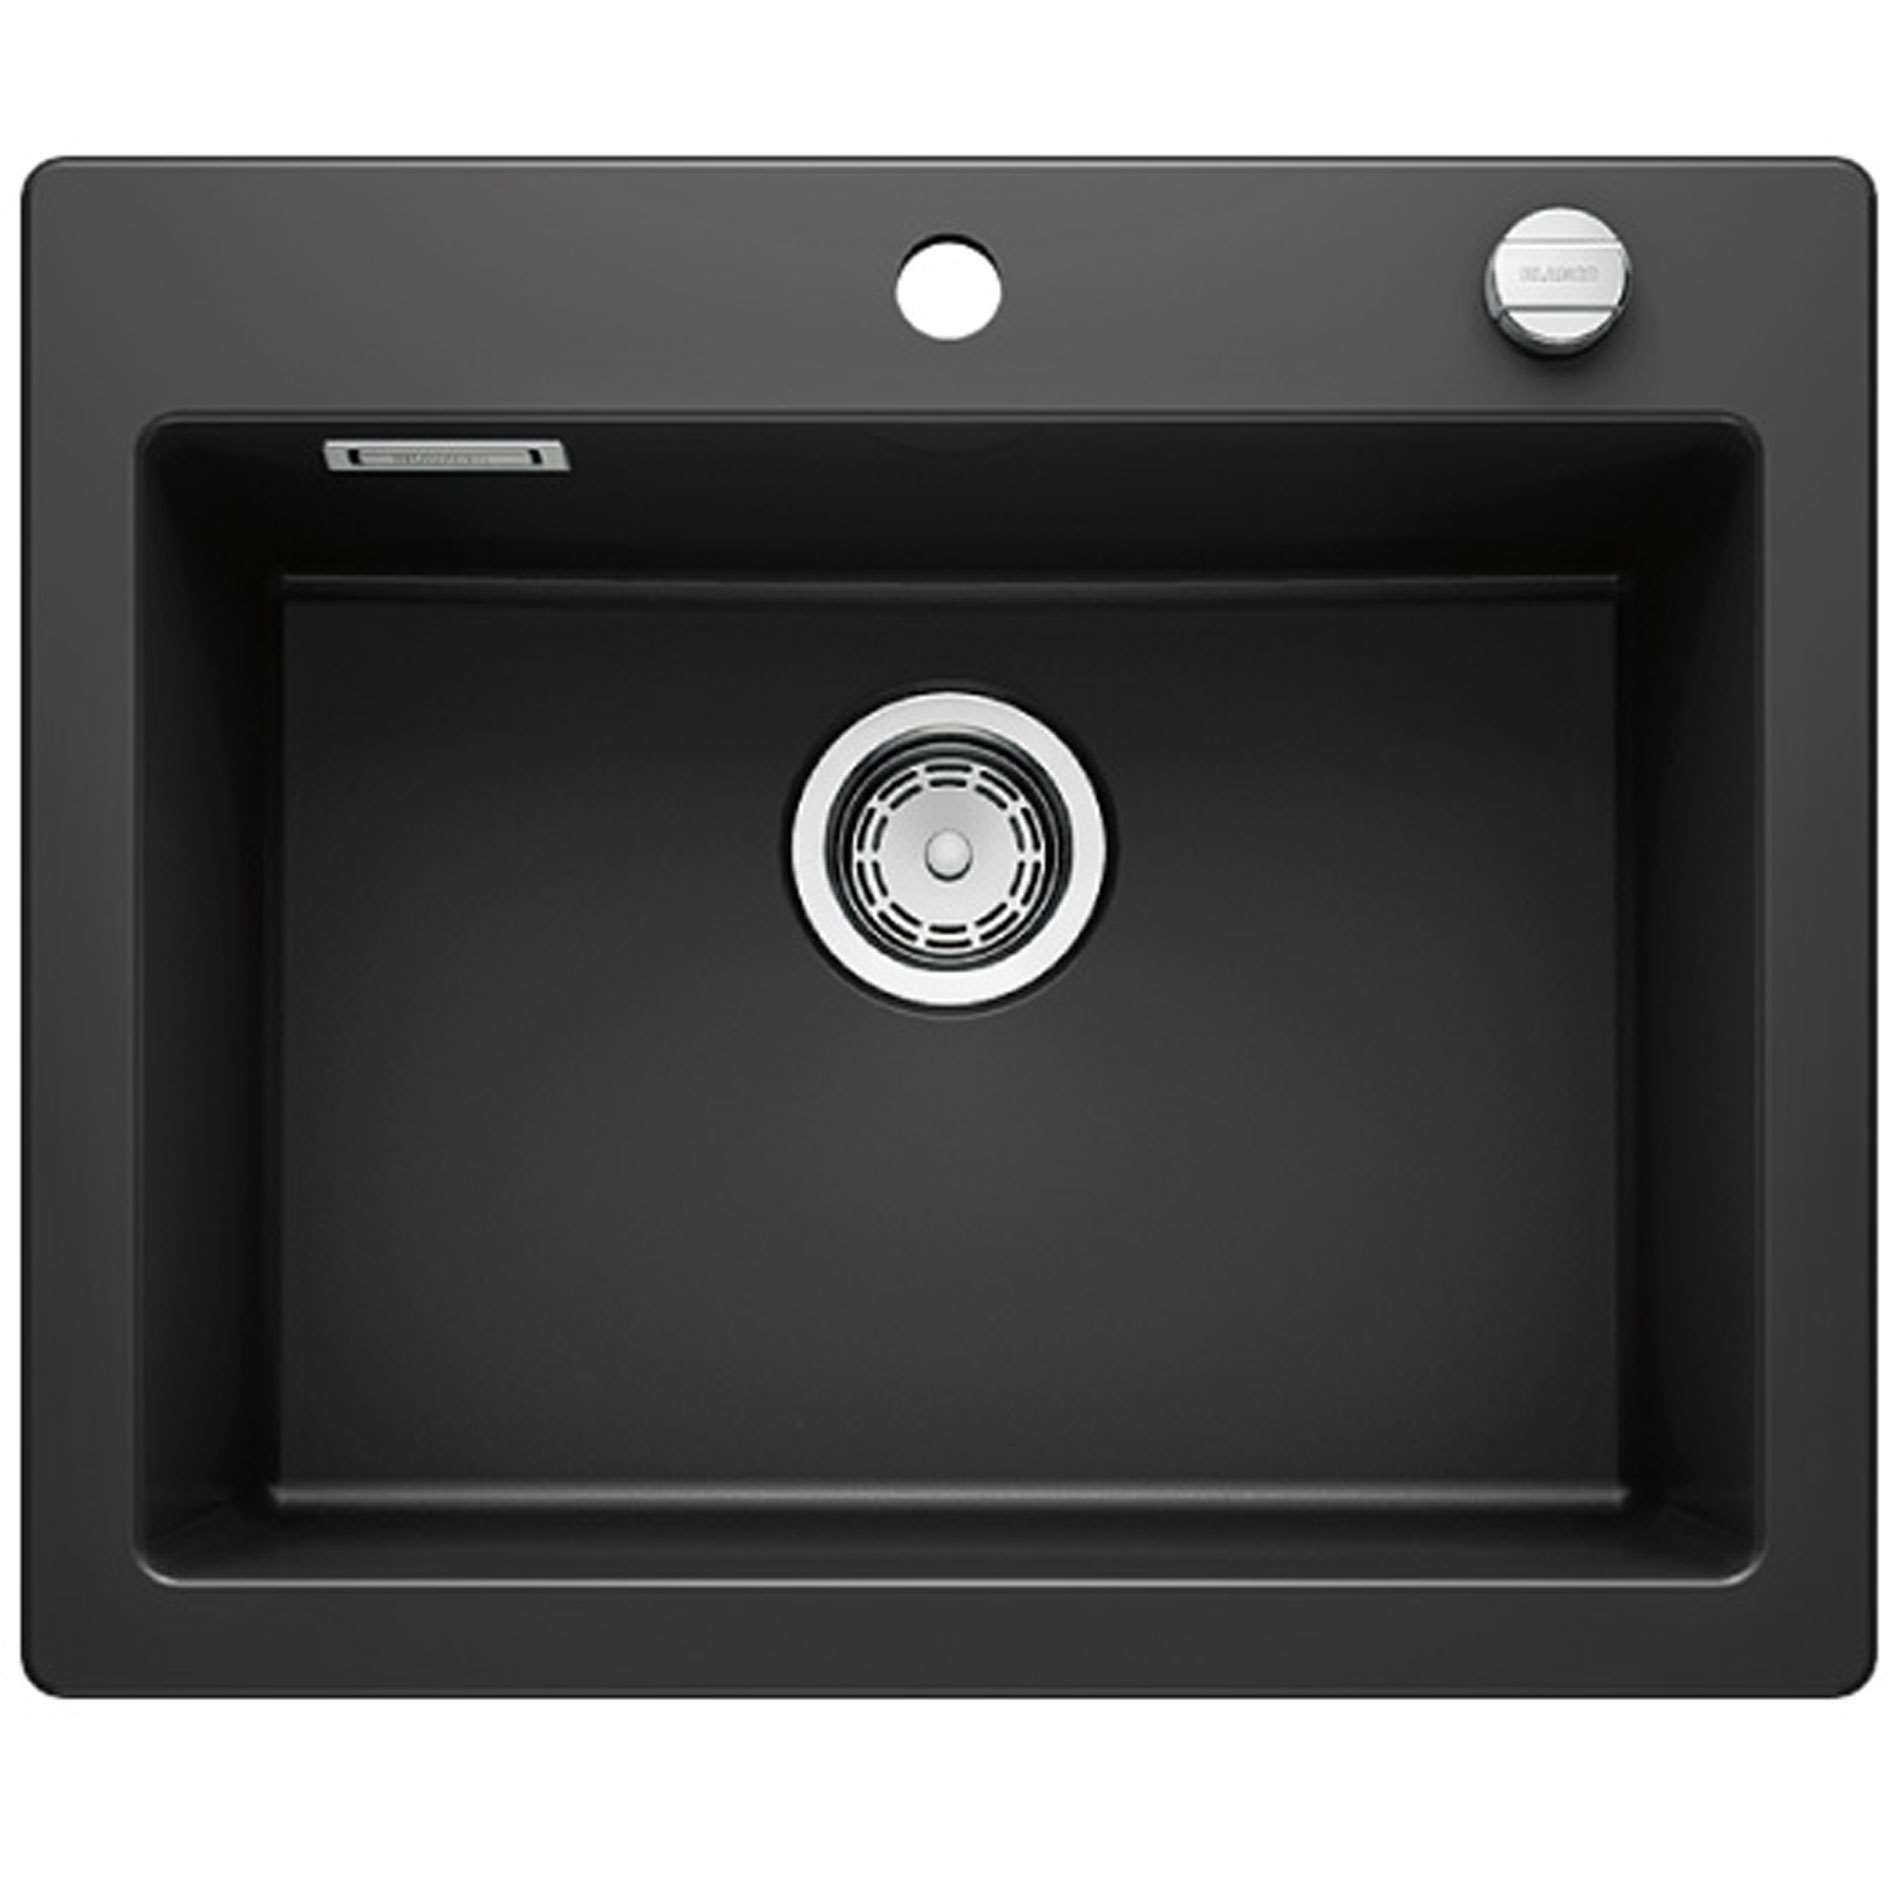 Blanco: Palona 6 Black Ceramic Sink - Kitchen Sinks & Taps